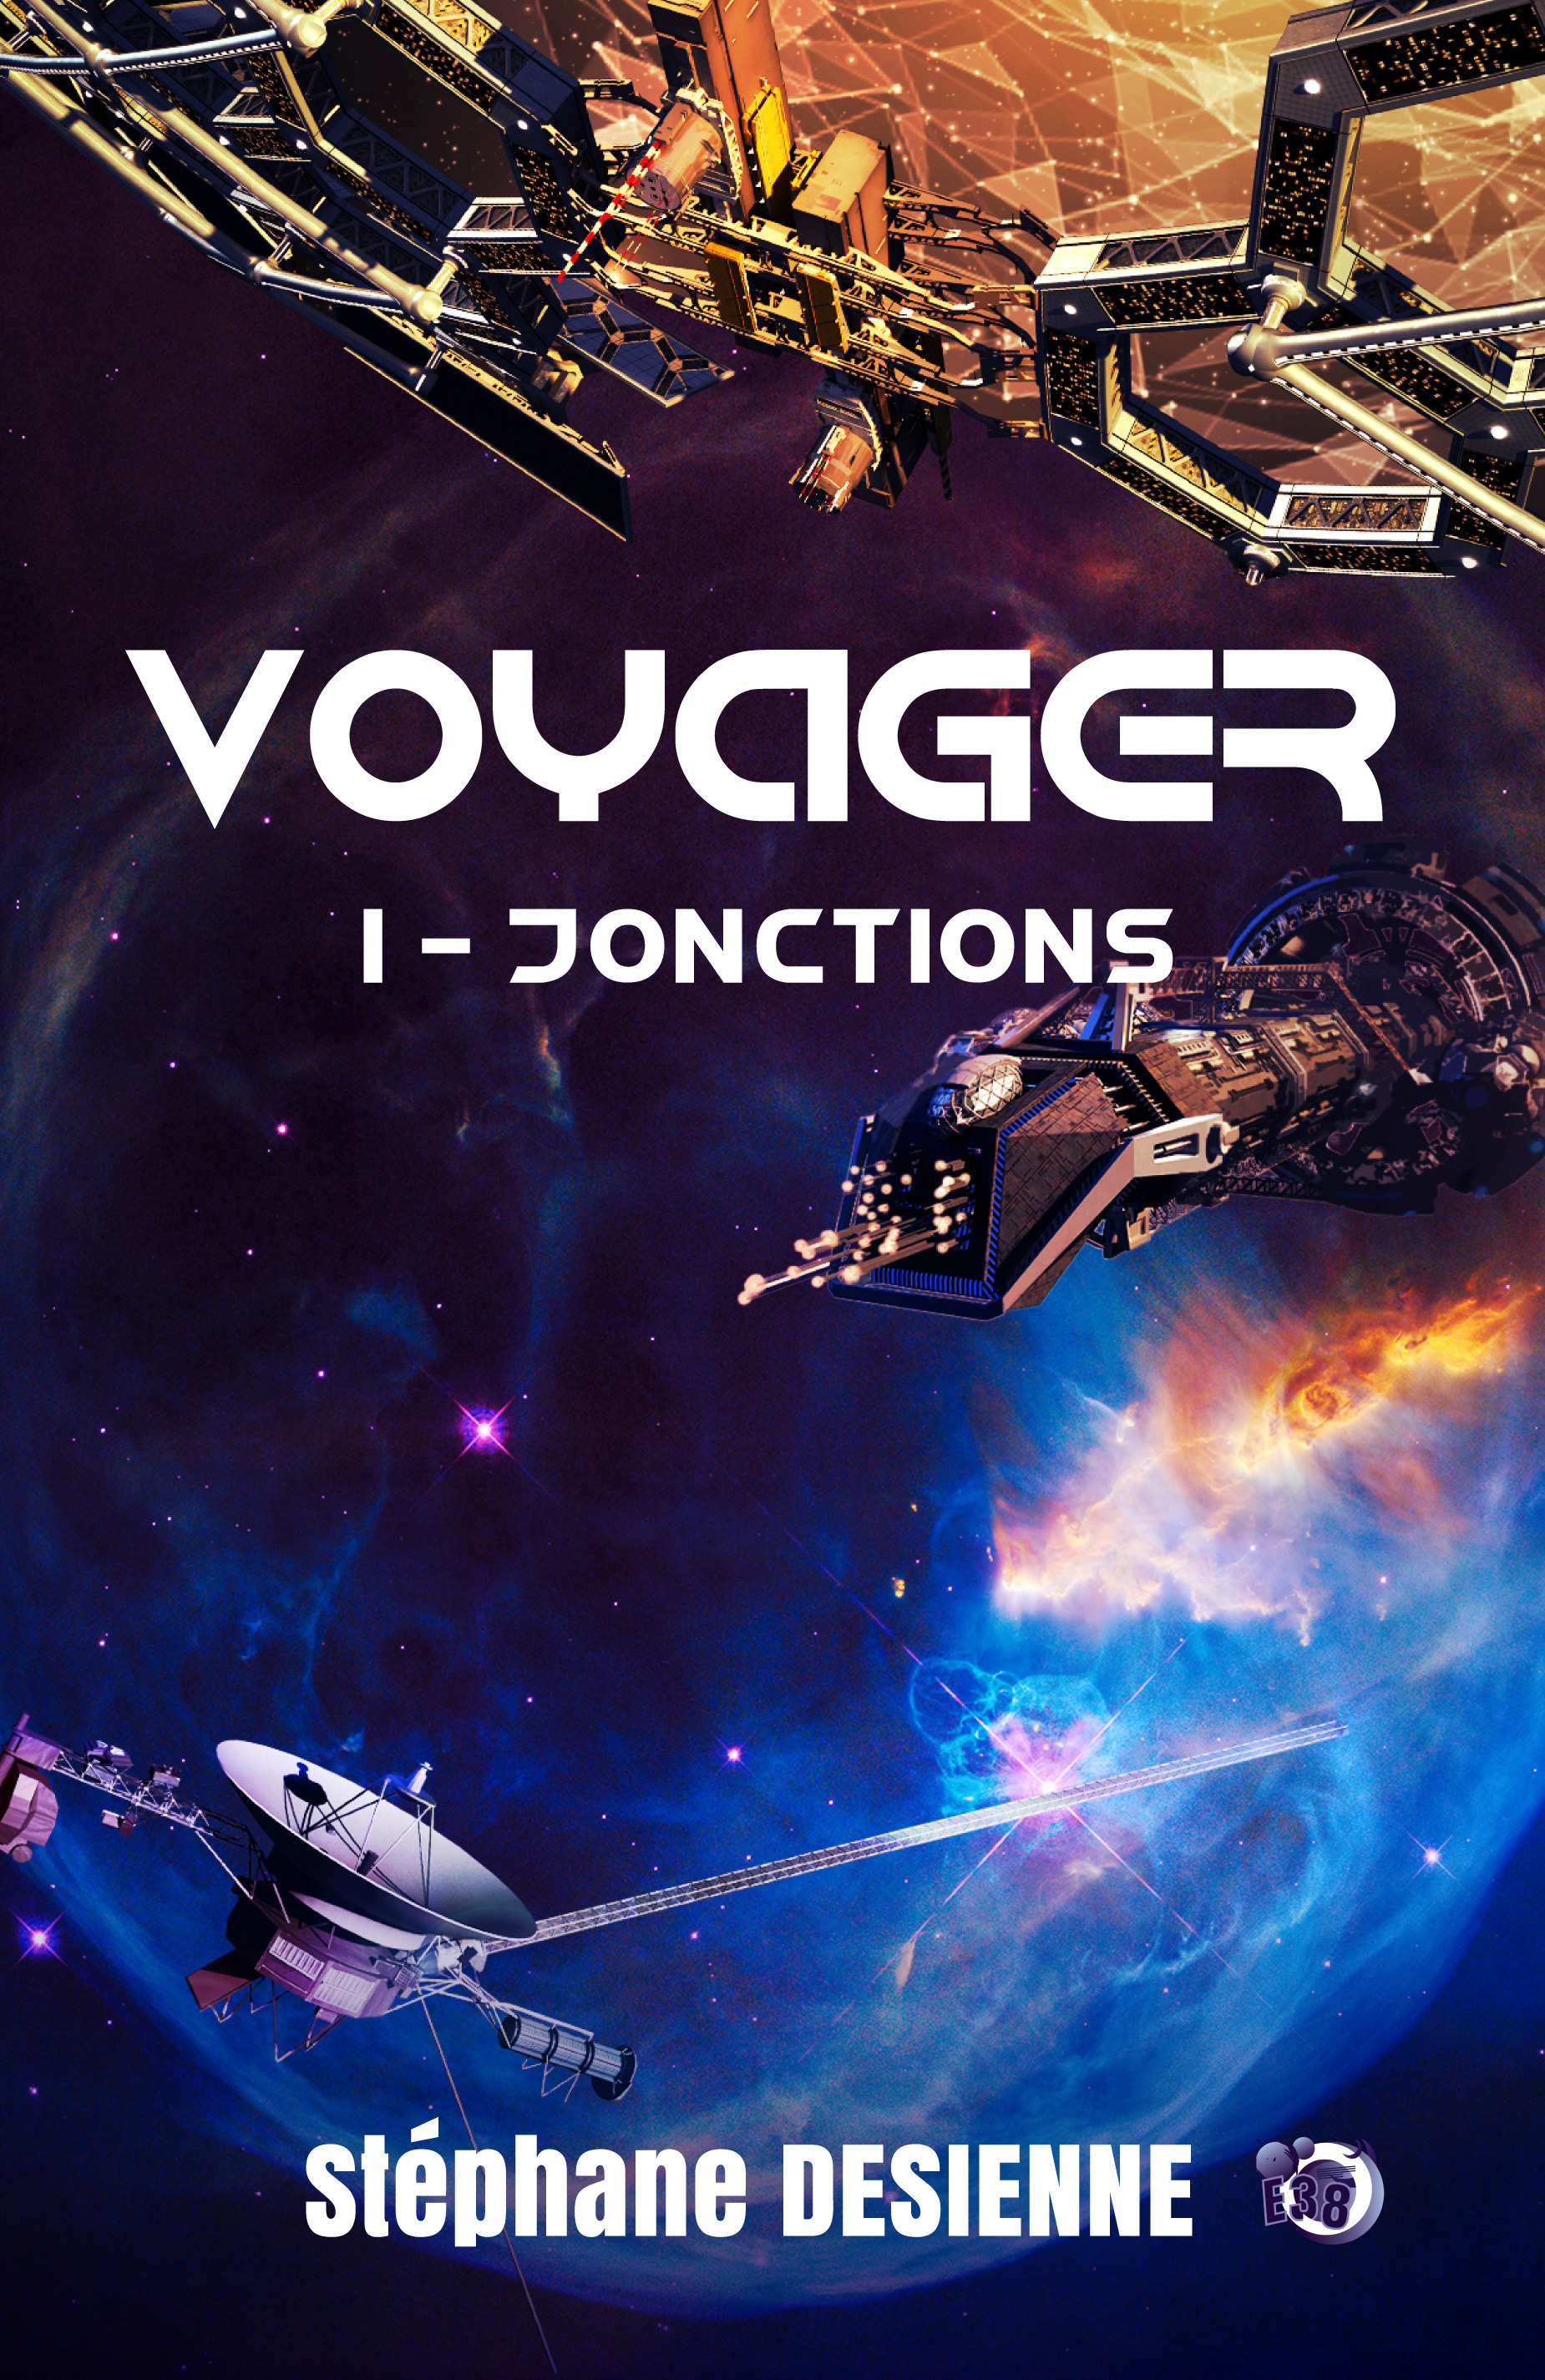 Voyager 1 - jonctions